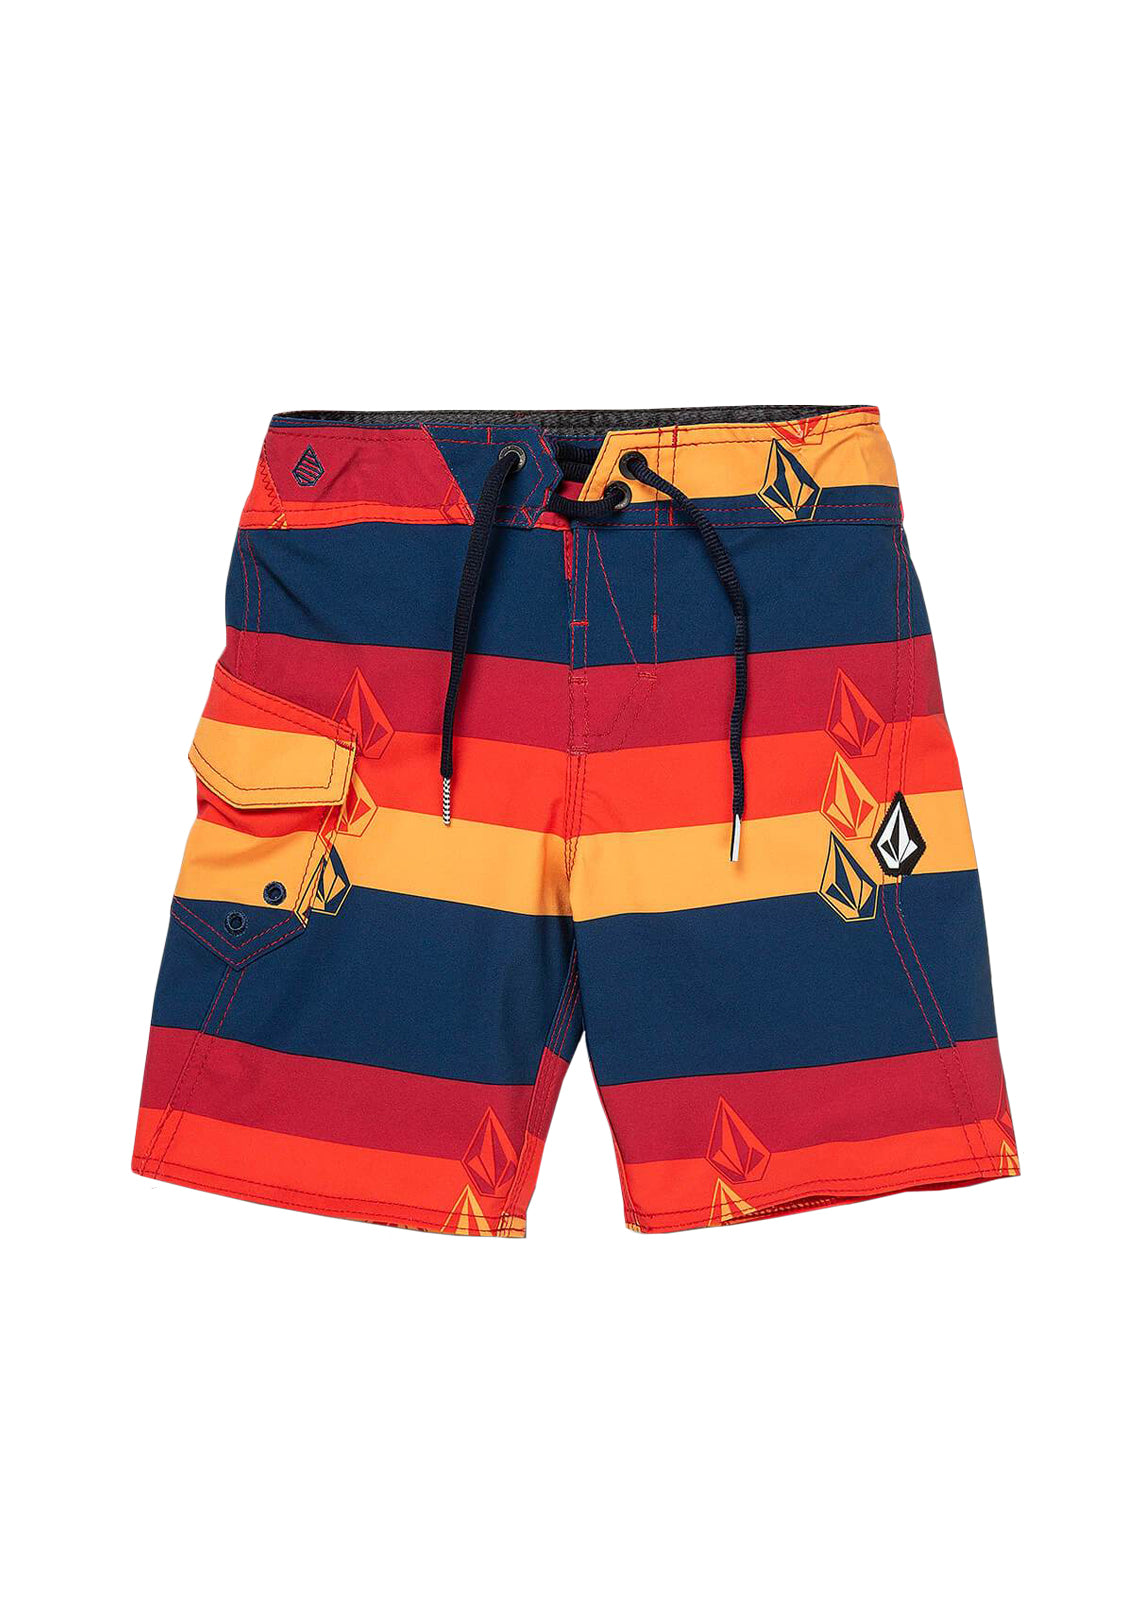 Little Boy's Lido Liney Mod Boardshorts